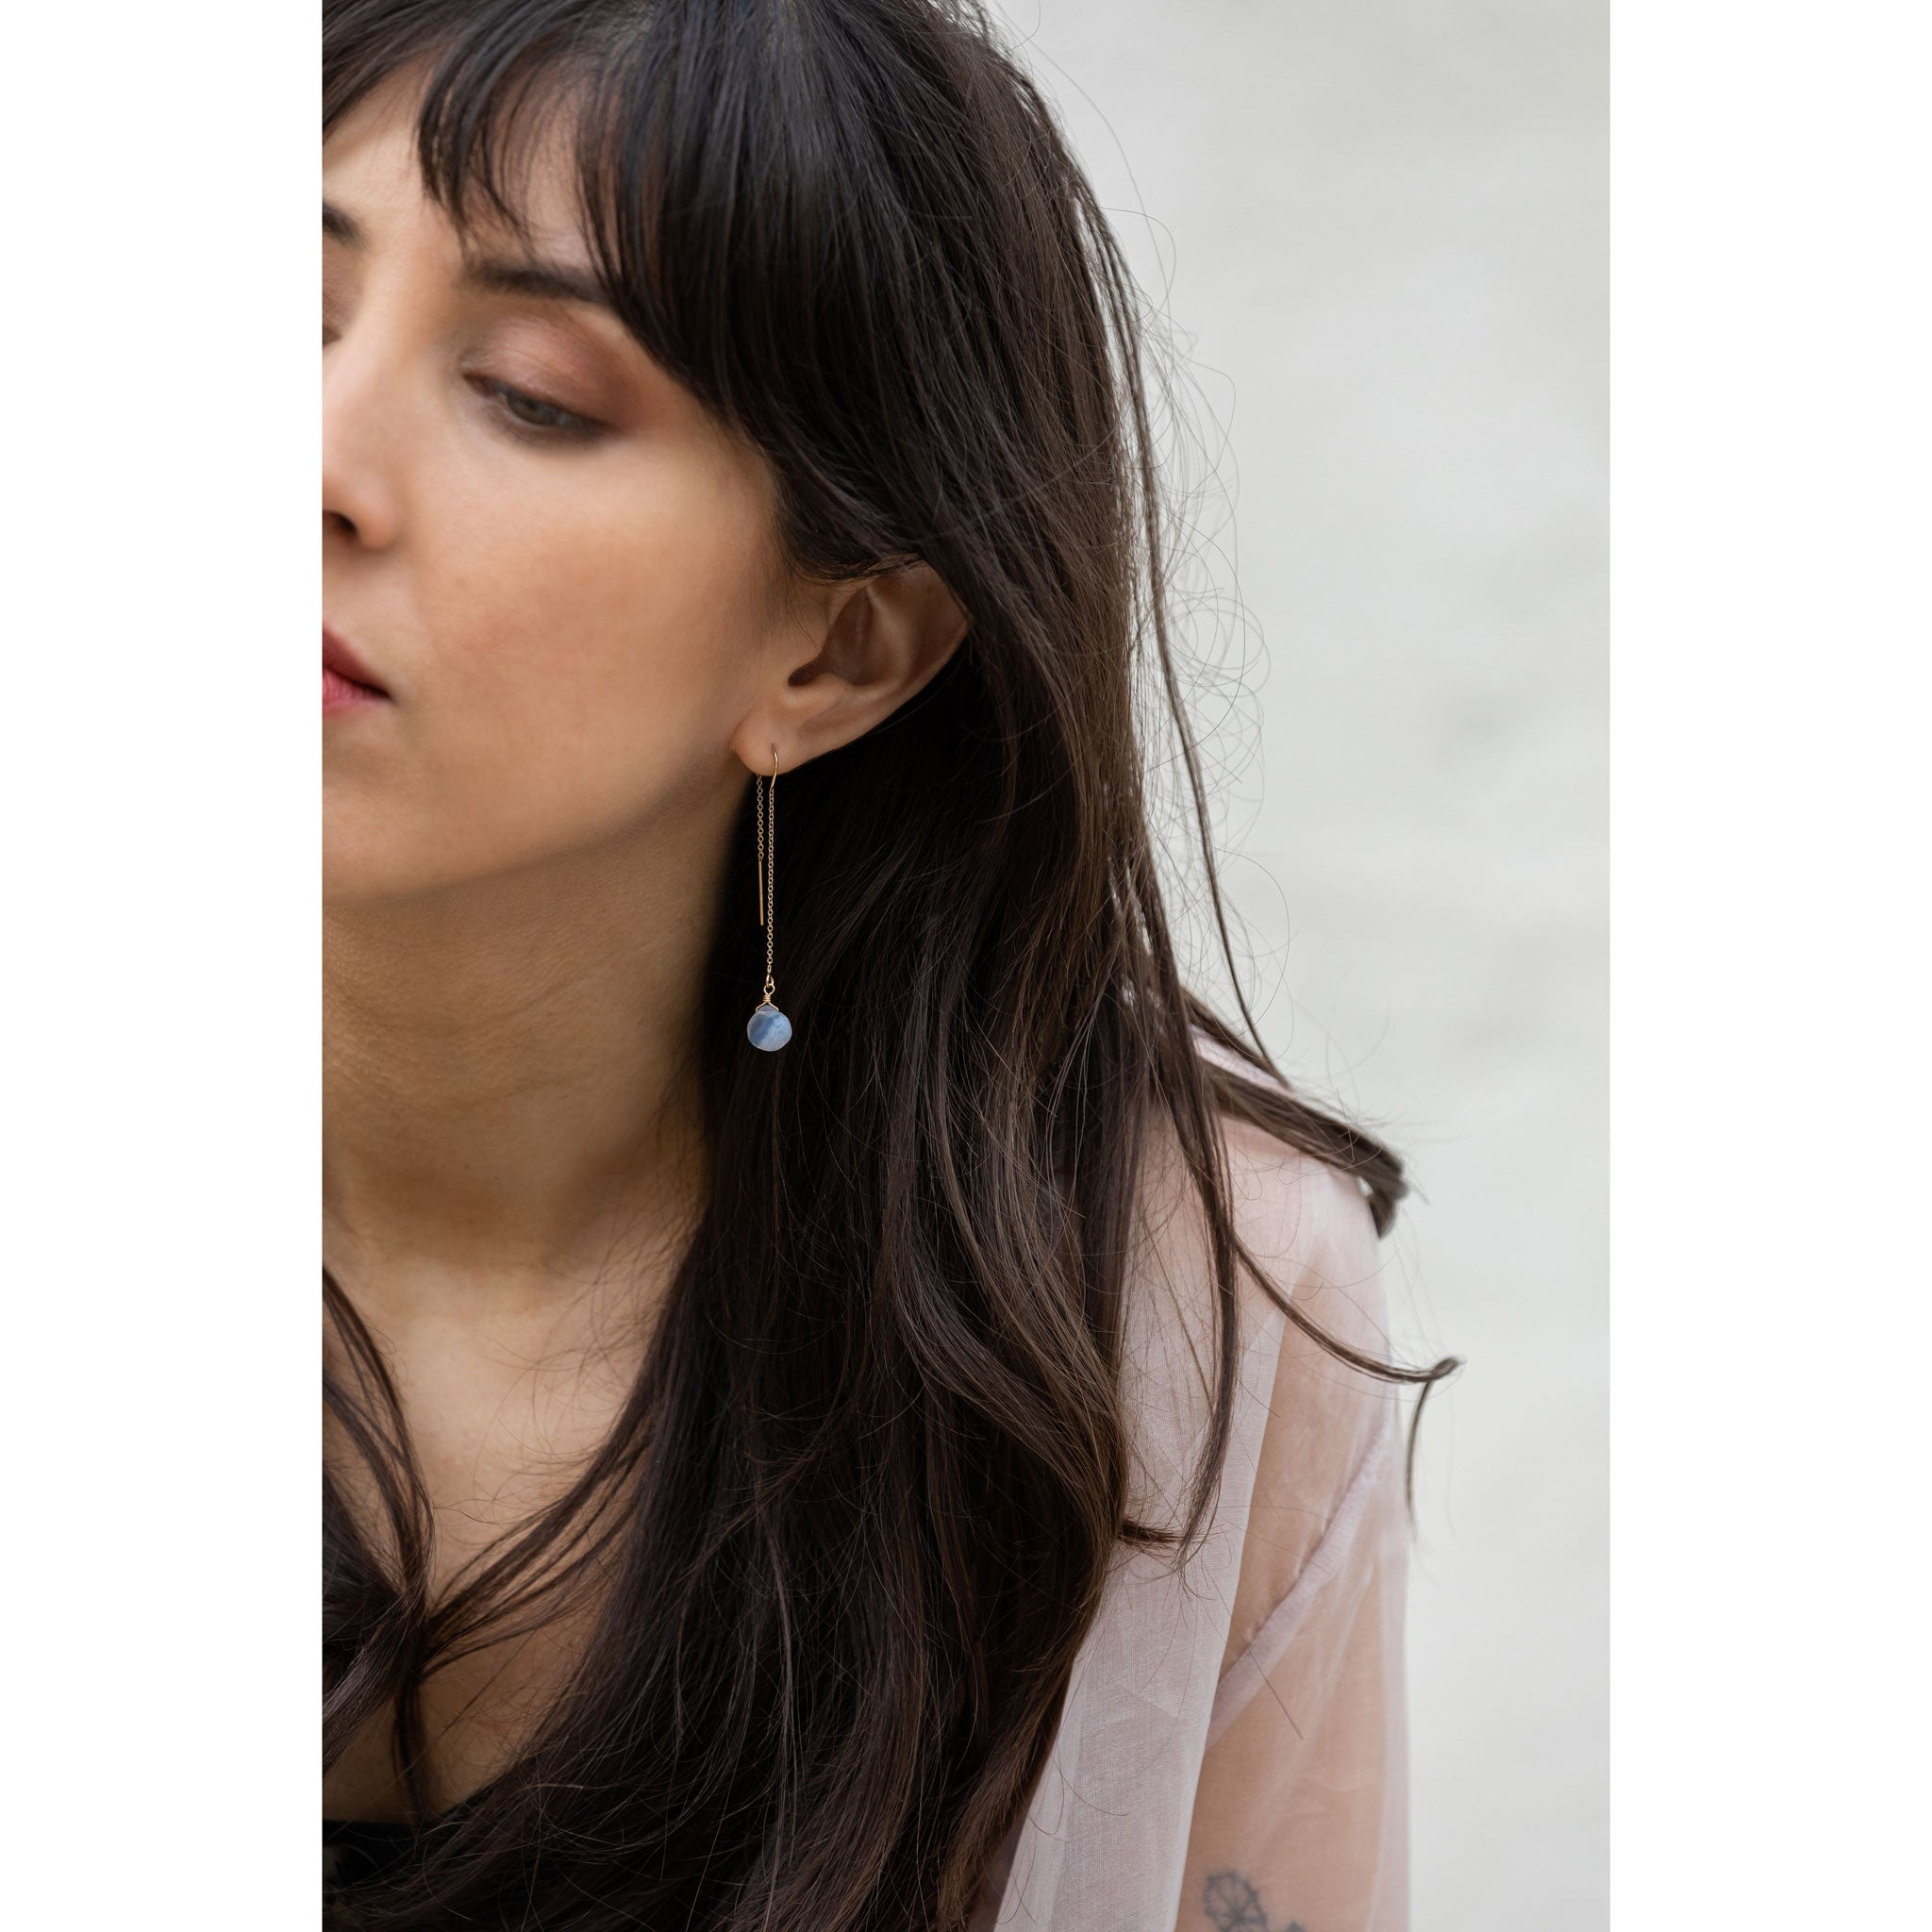 waterfall earring | blue lace agate